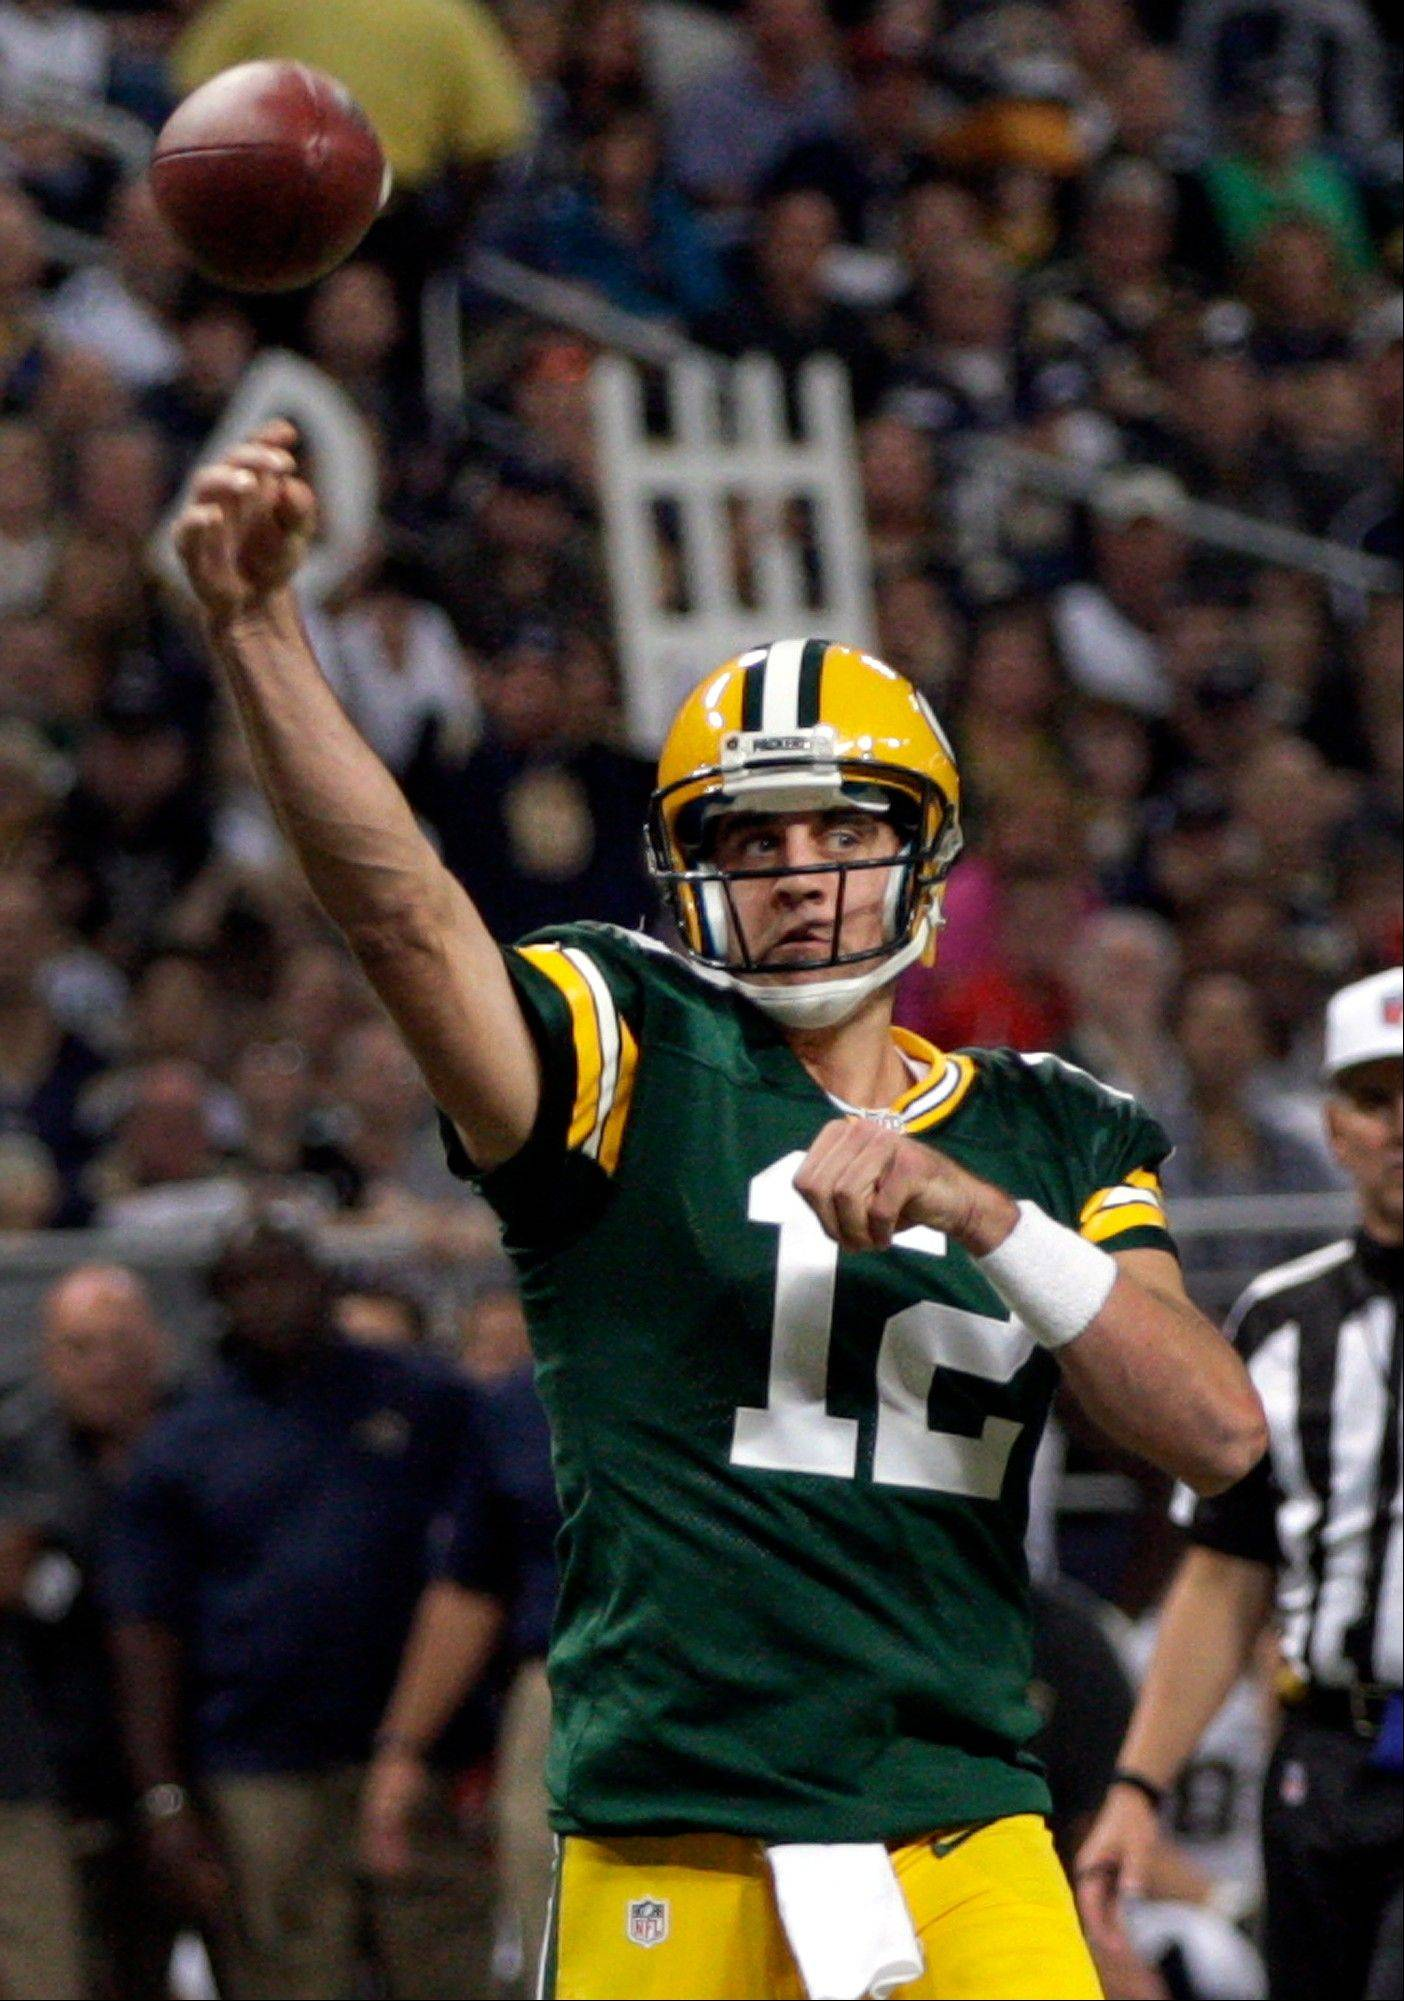 Packers quarterback Aaron Rodgers throws a 3-yard touchdown pass to wide receiver Jordy Nelson during the first quarter Sunday against the Rams in St. Louis.